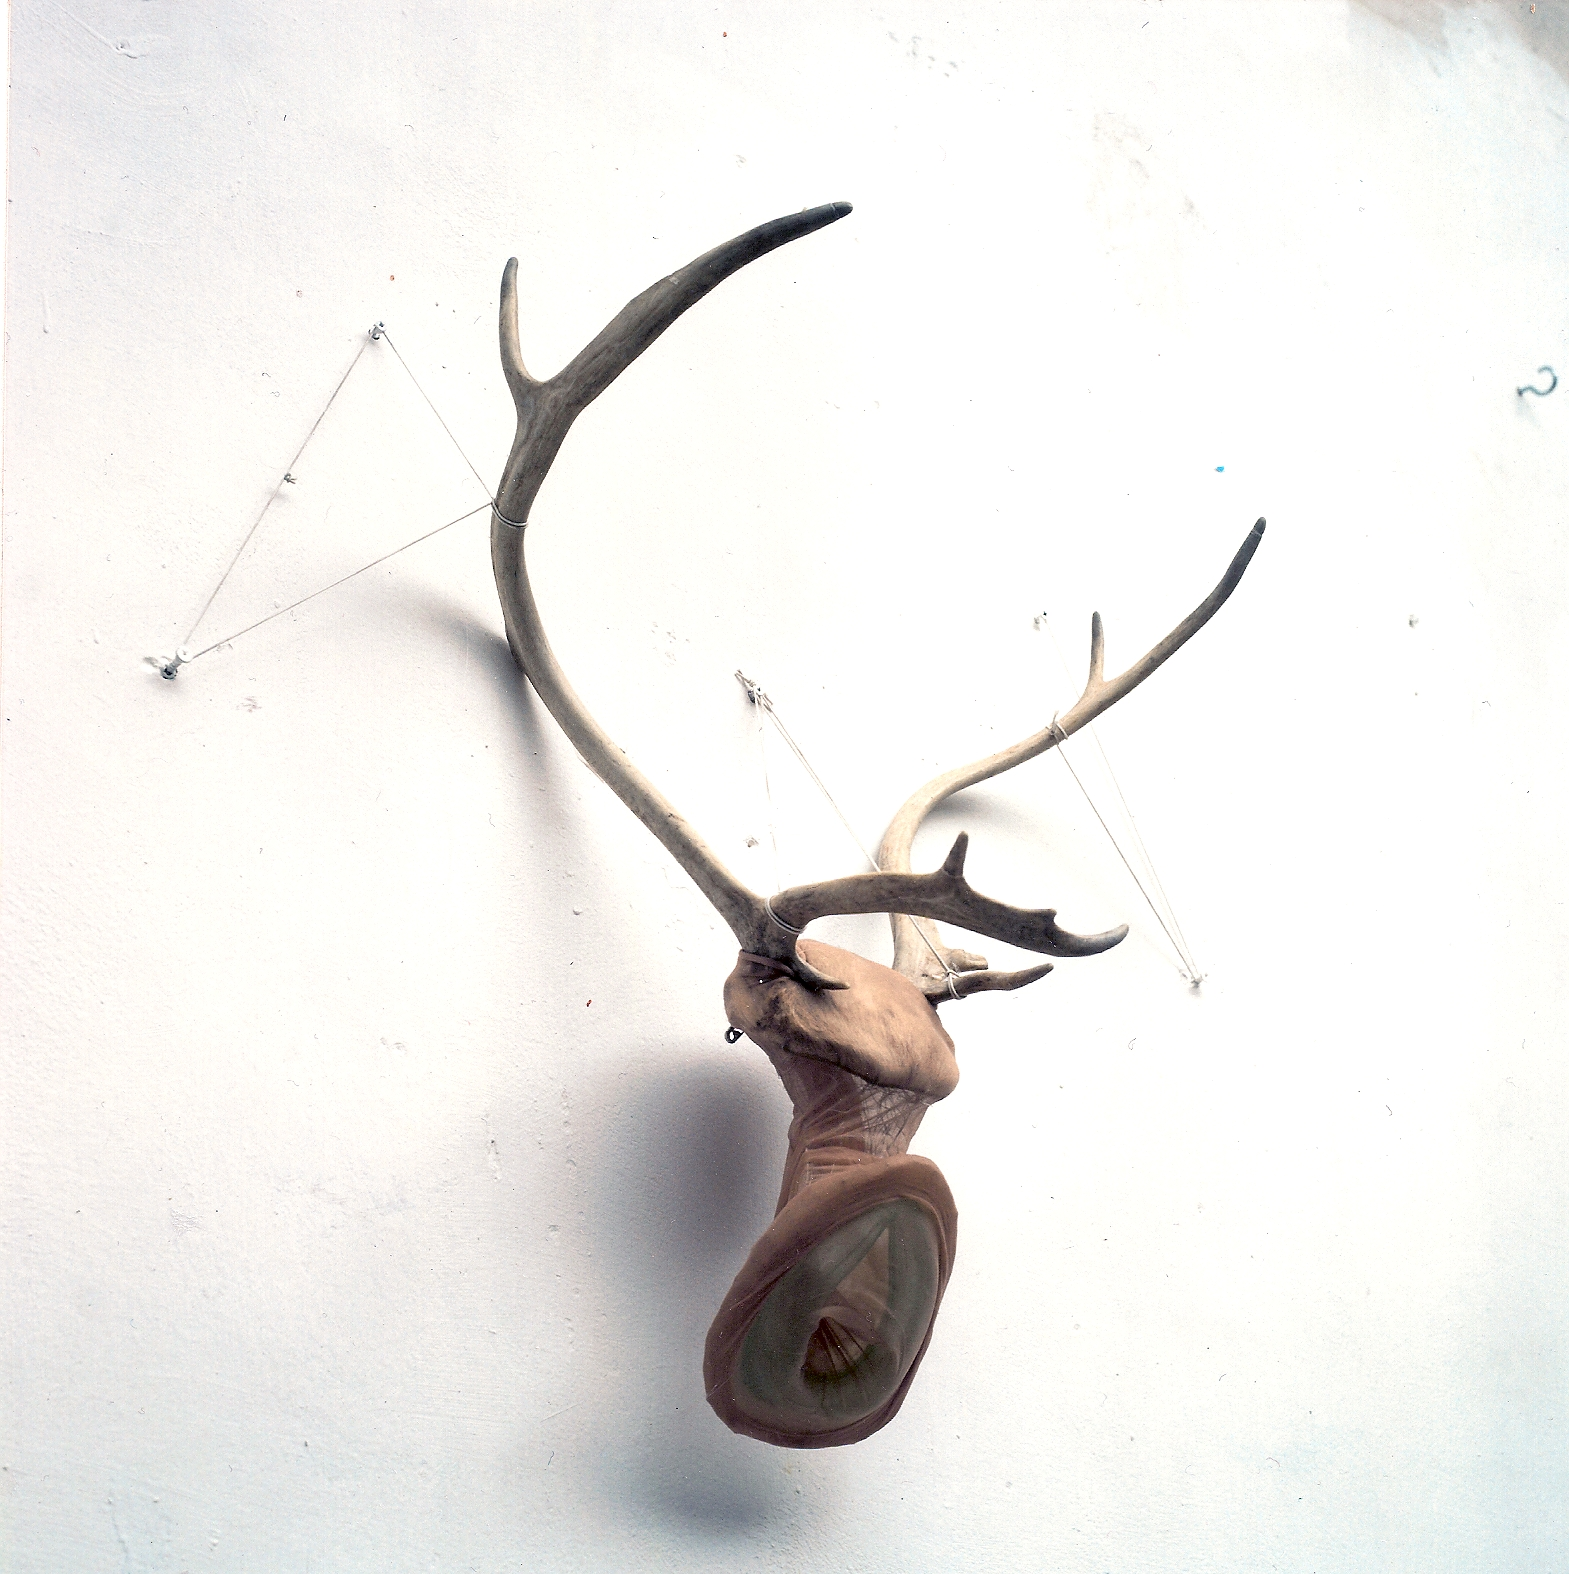 """No name"", 1994. Mixed media: reinsdyrhorn, ståltråd, nylon og oksygenmaske"